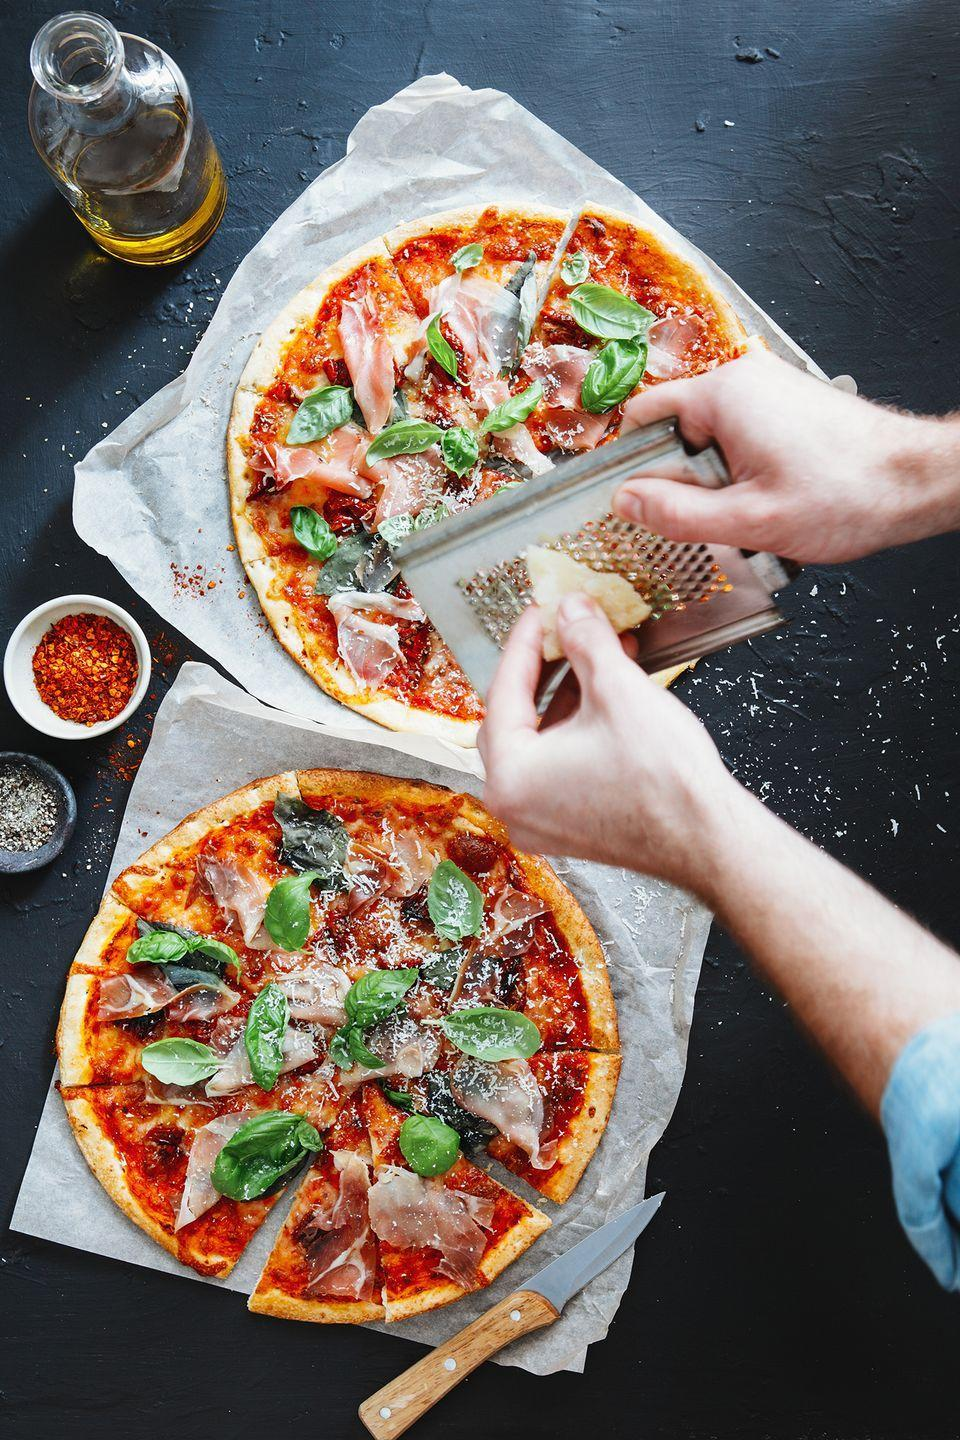 """<p>Spend an evening learning how to cook or bake a new dish together, or you can save money by taking a free """"class"""" at home. There are several popular <a href=""""https://www.youtube.com/channel/UCRIZtPl9nb9RiXc9btSTQNw"""" rel=""""nofollow noopener"""" target=""""_blank"""" data-ylk=""""slk:YouTube"""" class=""""link rapid-noclick-resp"""">YouTube</a> channels you can watch to learn how to make something scrumptious, or be your own teachers using a <a href=""""https://www.countryliving.com/food-drinks/g1115/romantic-valentines-day-dinners/"""" rel=""""nofollow noopener"""" target=""""_blank"""" data-ylk=""""slk:new recipe you find online"""" class=""""link rapid-noclick-resp"""">new recipe you find online</a>.</p>"""